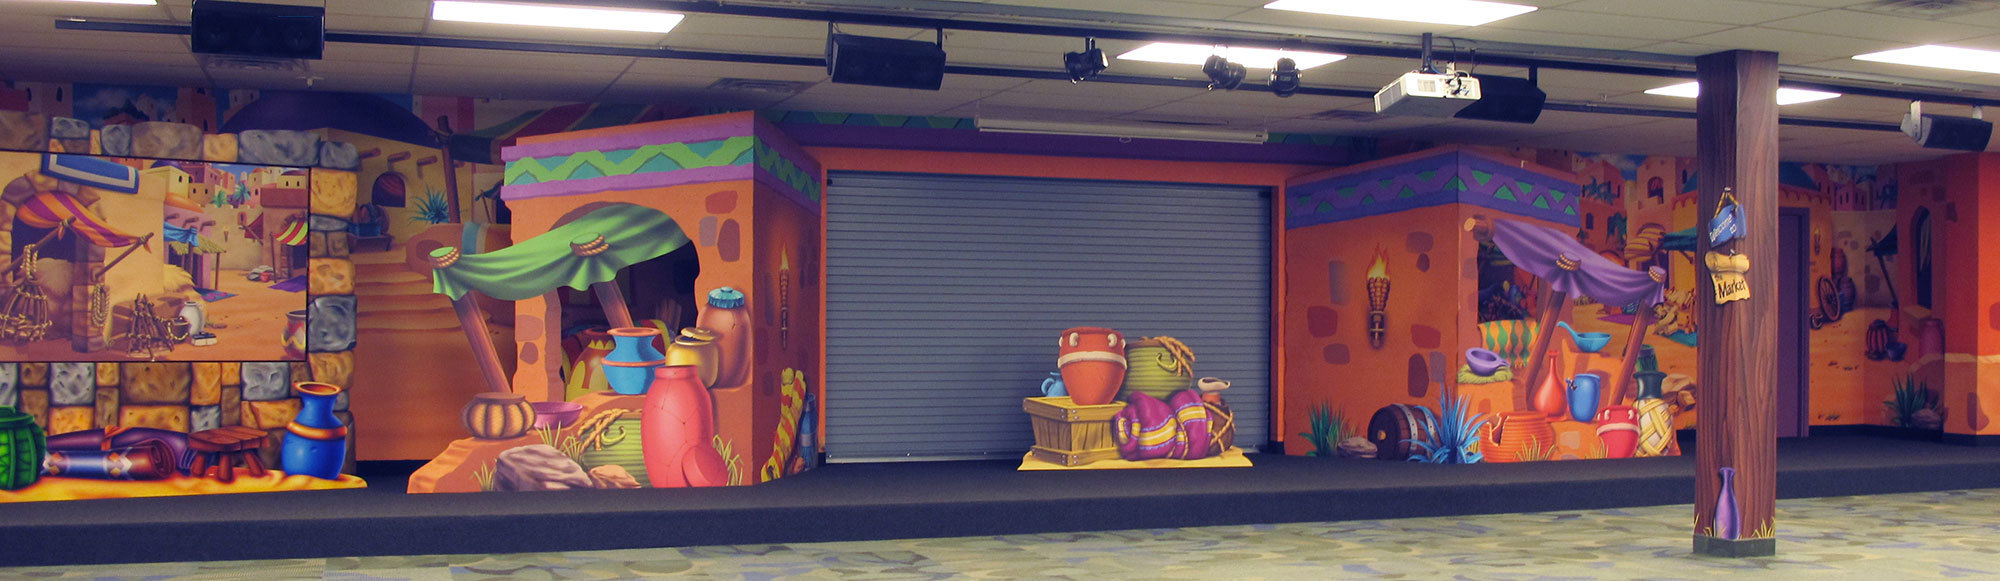 Biblical Market Themed Stage with 2D Cutouts